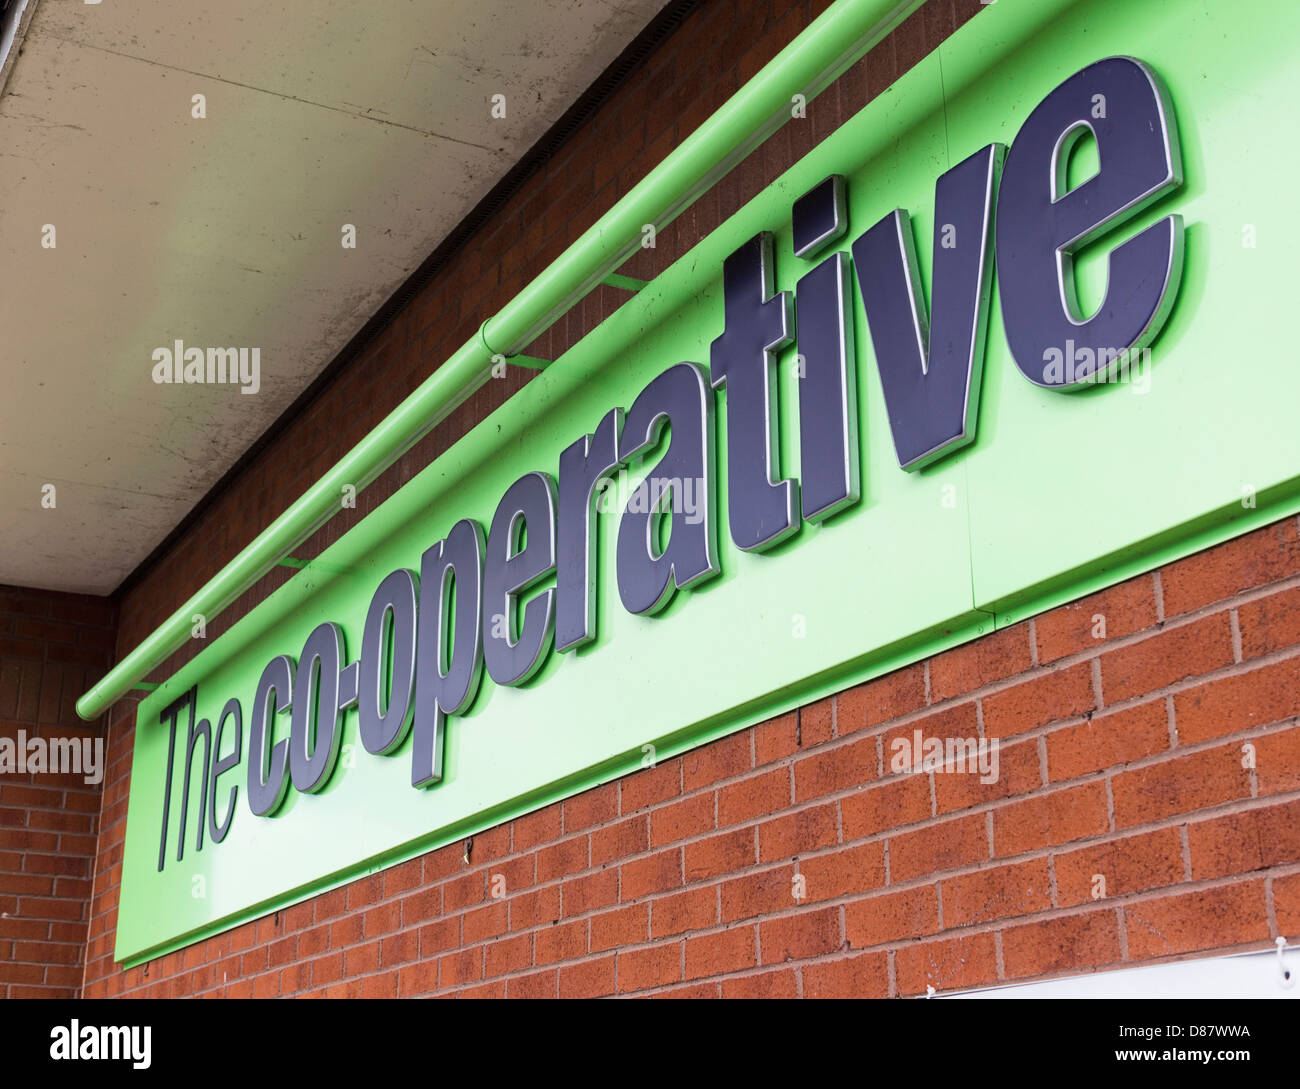 The Co-op supermarket chain logo, UK - Stock Image